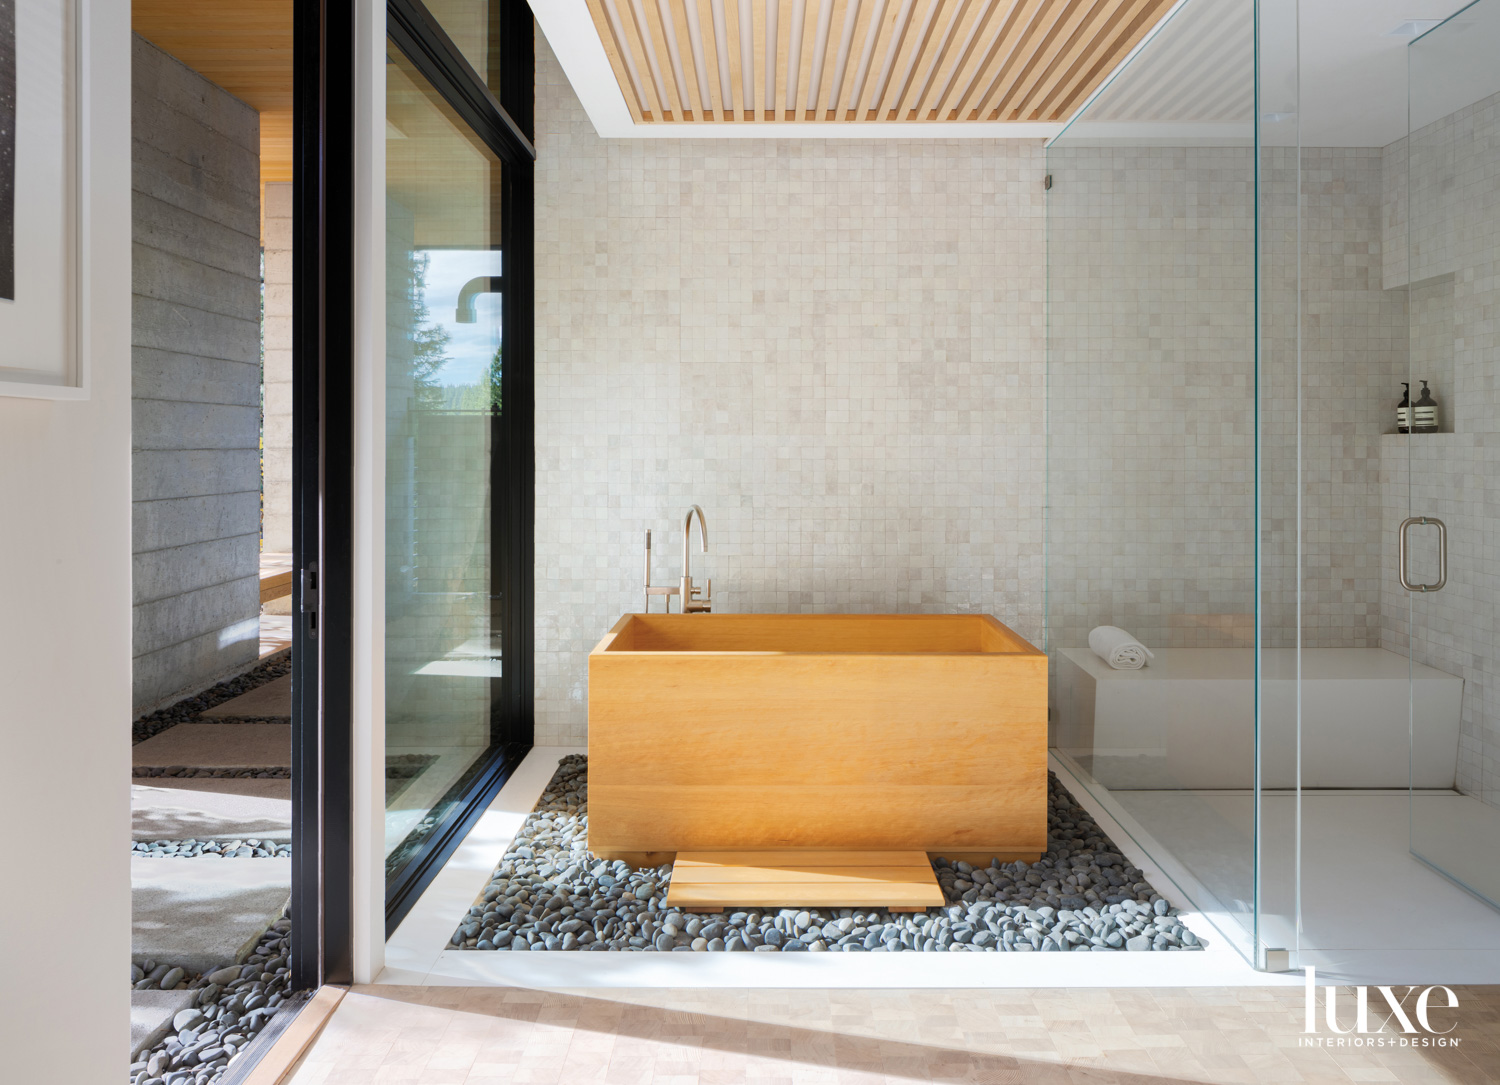 A wooden tub is featured...